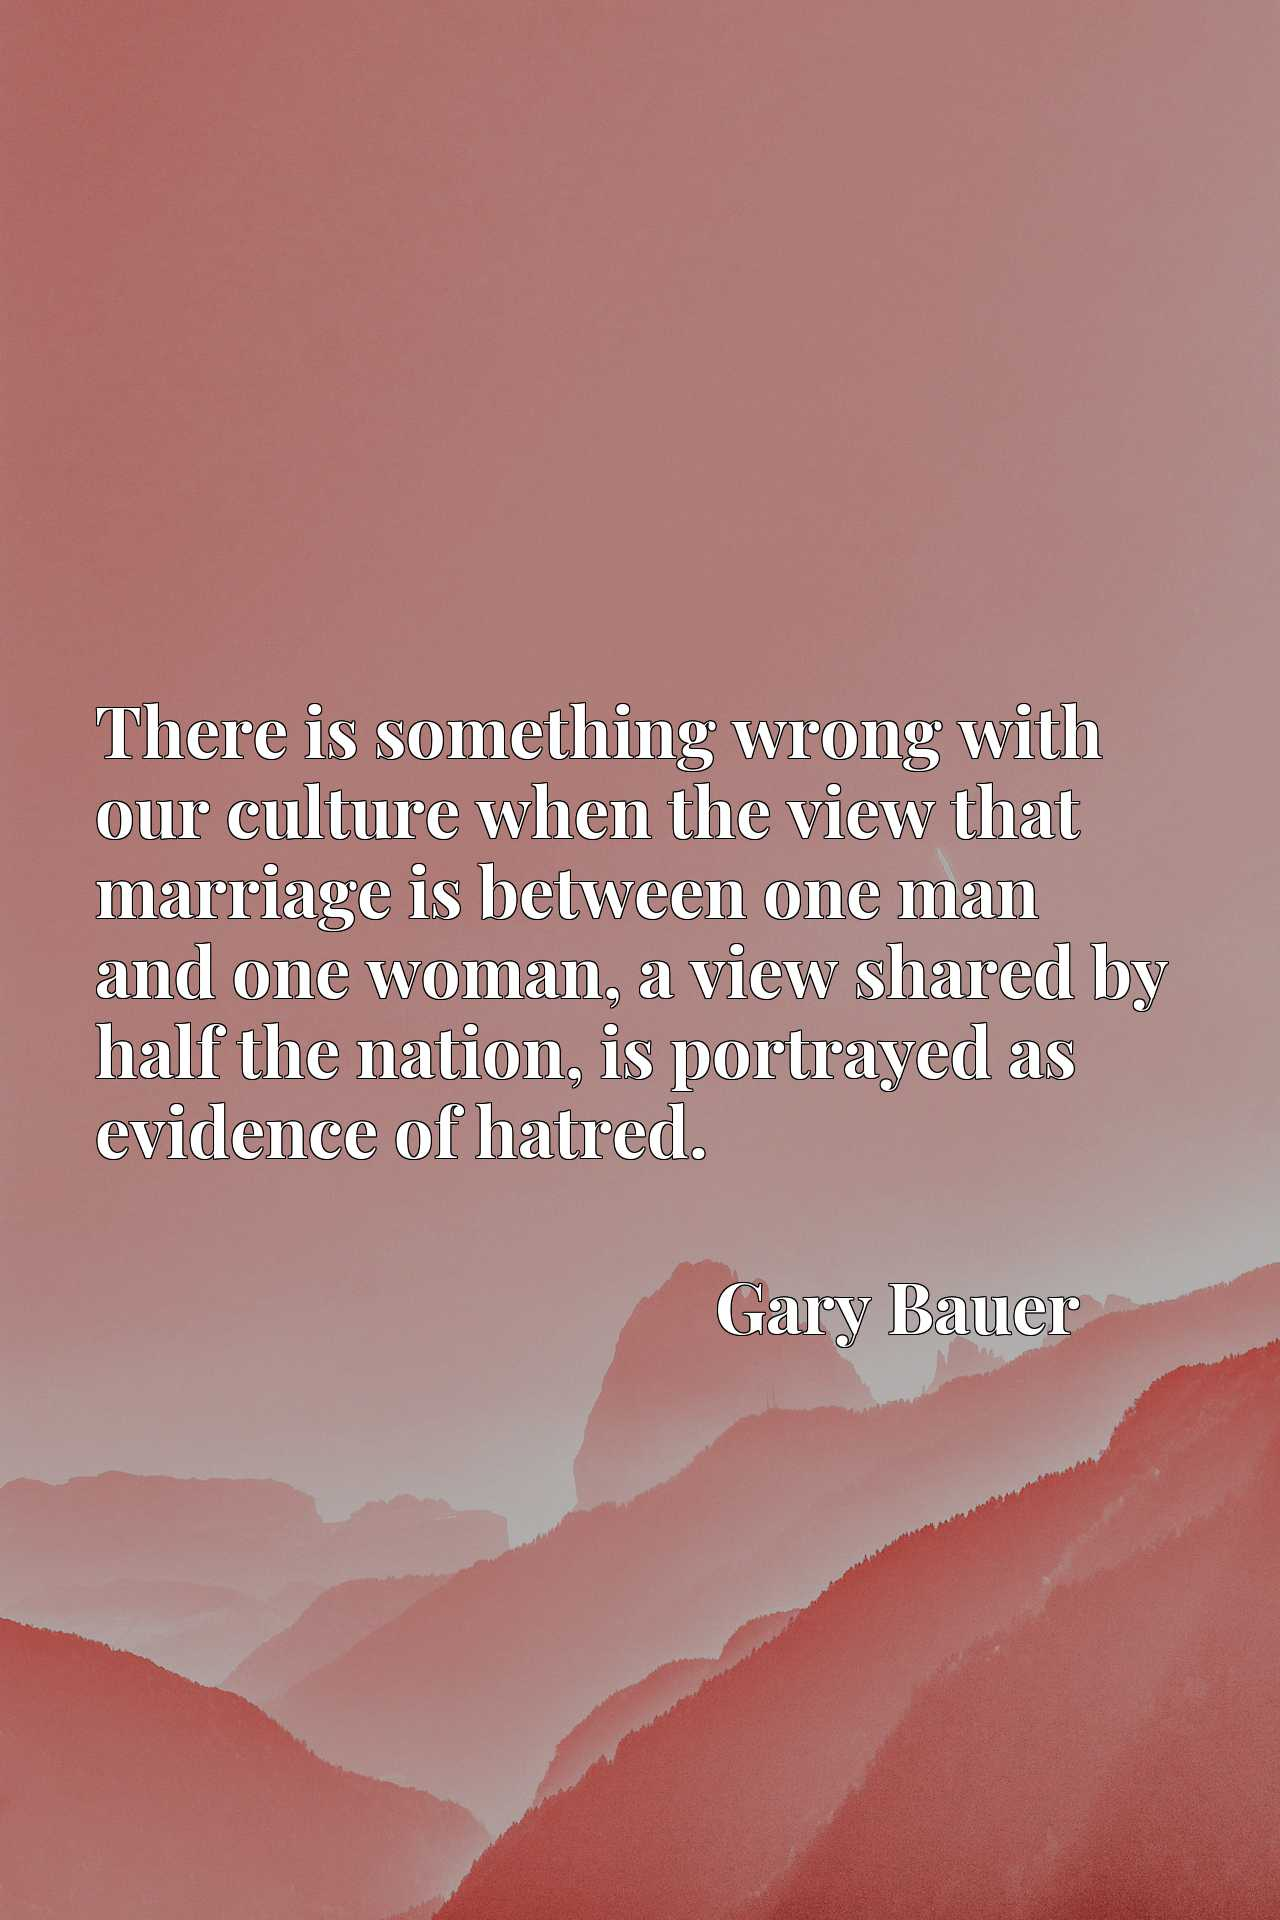 There is something wrong with our culture when the view that marriage is between one man and one woman, a view shared by half the nation, is portrayed as evidence of hatred.